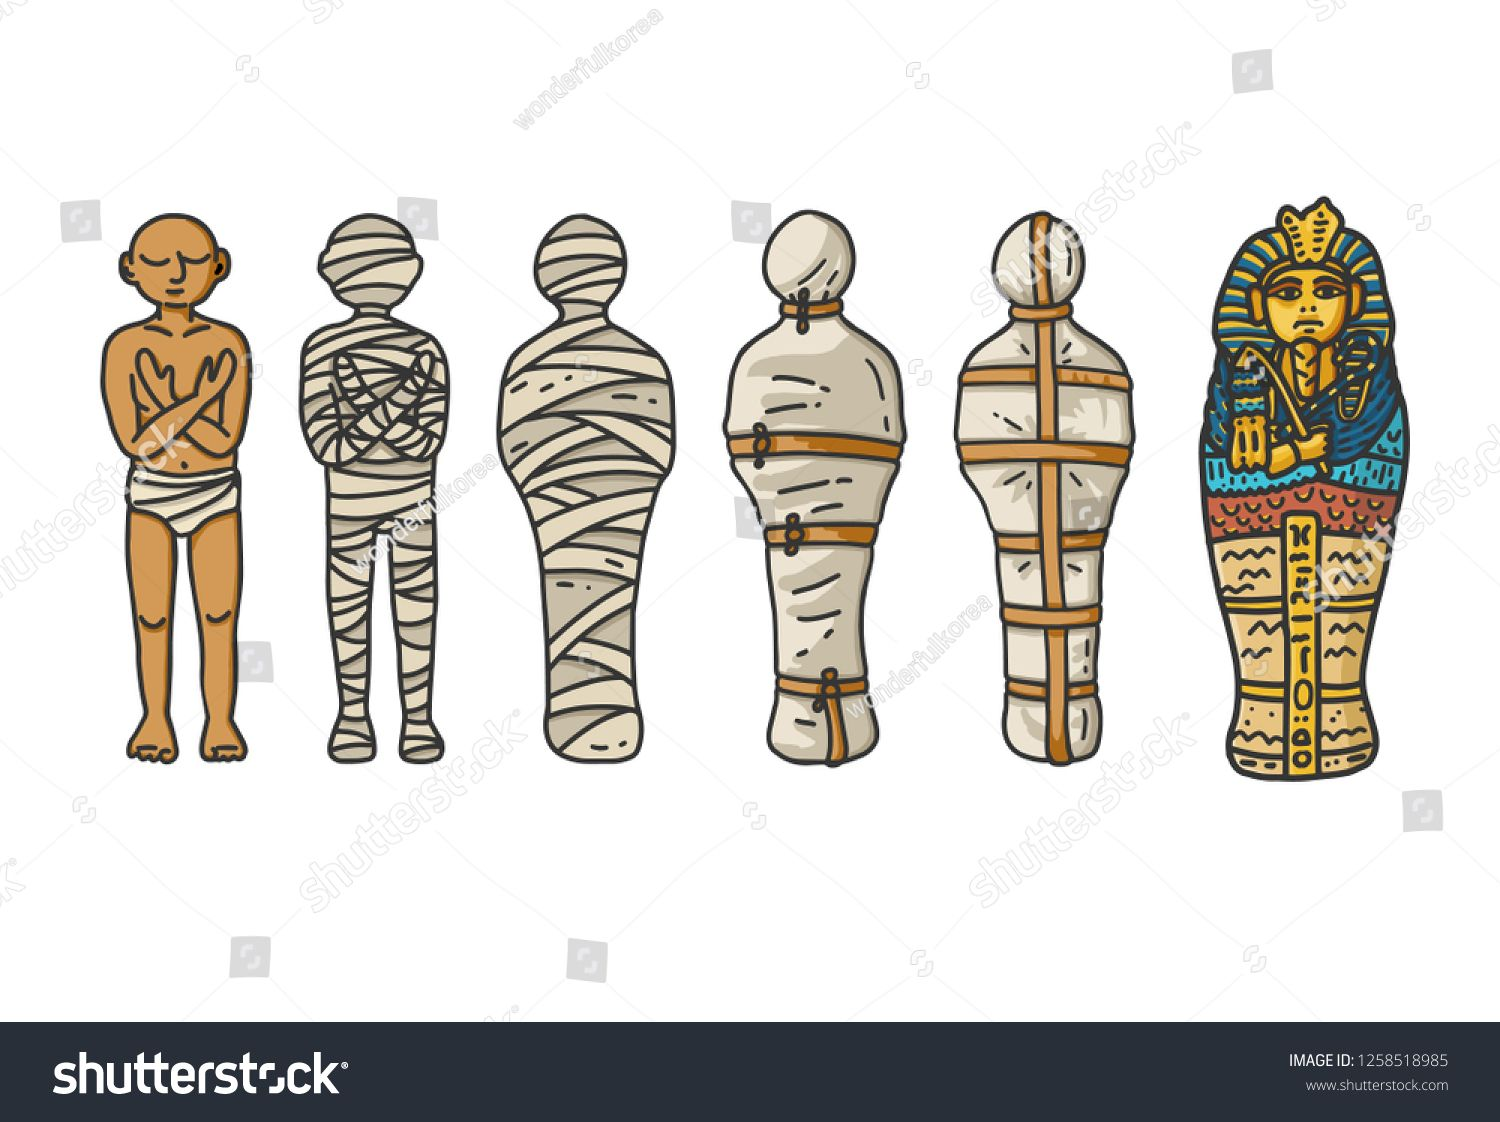 Mummy Creation A Six Step Process Showing How The Ancient